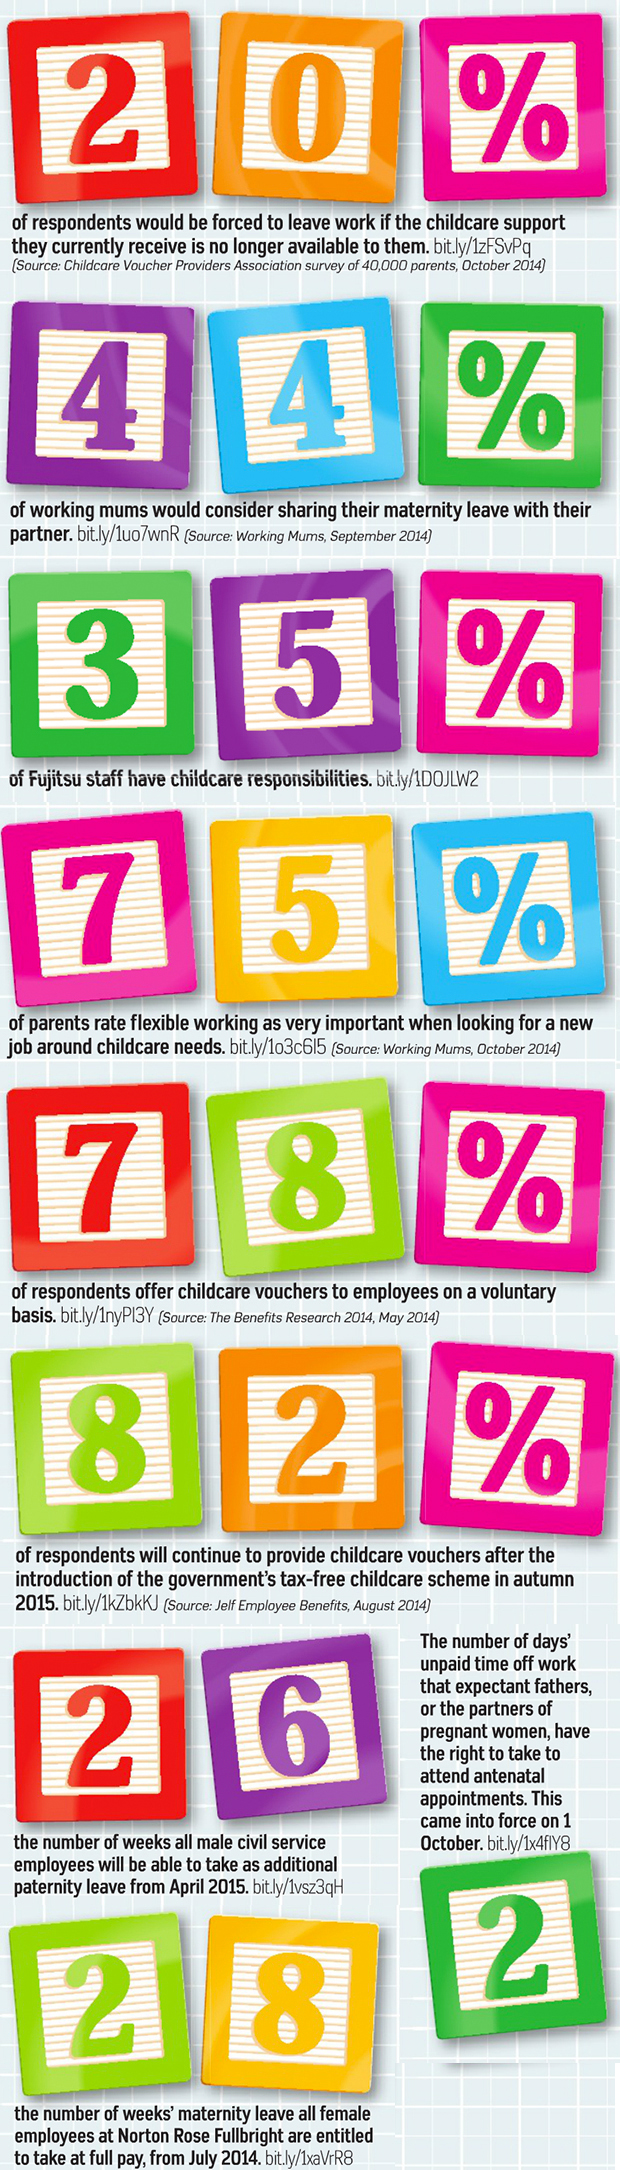 Childcare in numbers graphic